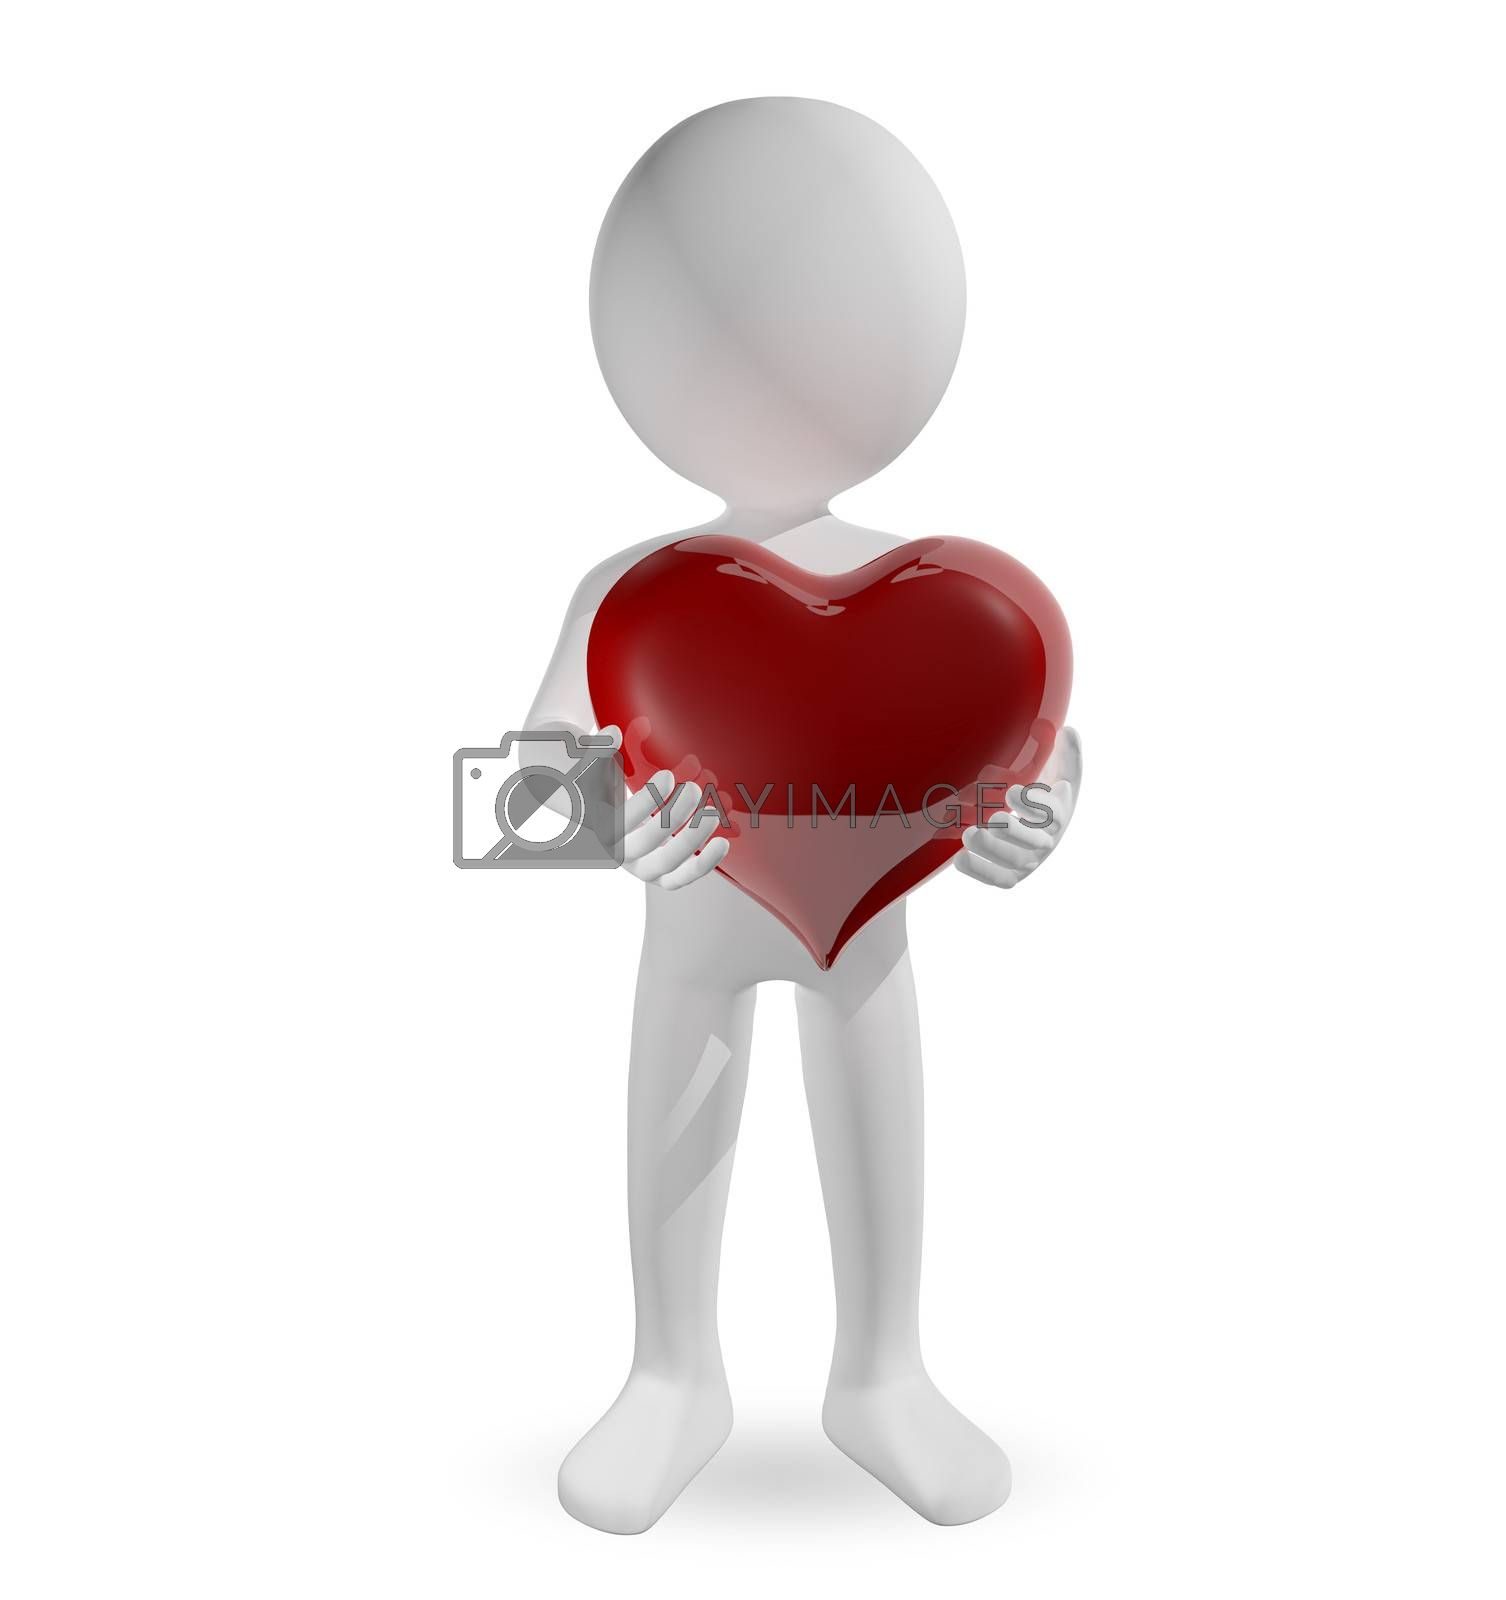 3d illustration of a man with a heart